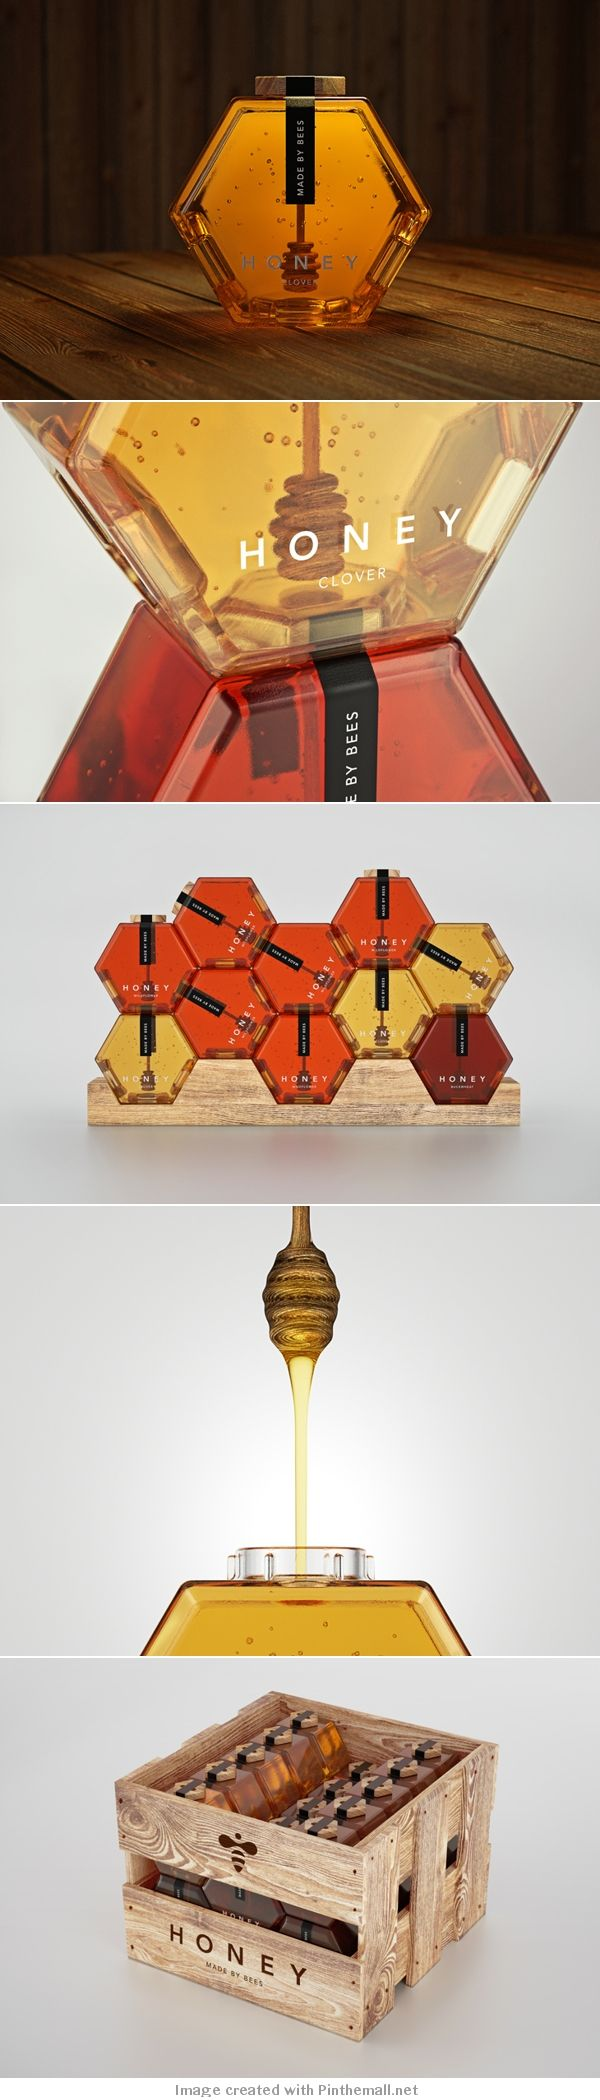 Hexagonal Honey Bottle Packaging Concept by Maksim Arbuzov